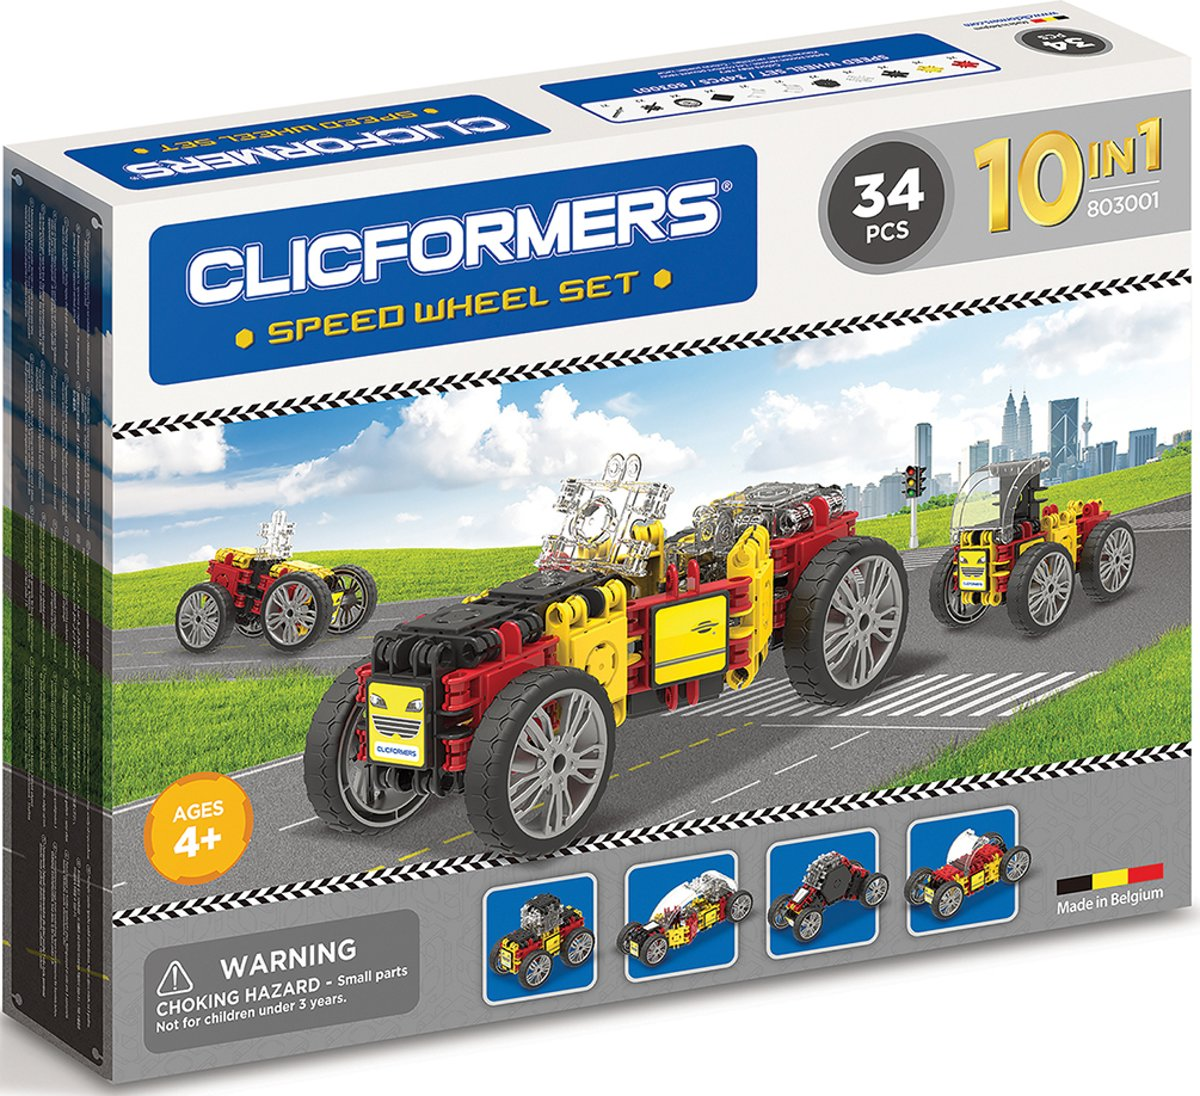 Clicformers - Speed Wheel Set - 34 pcs